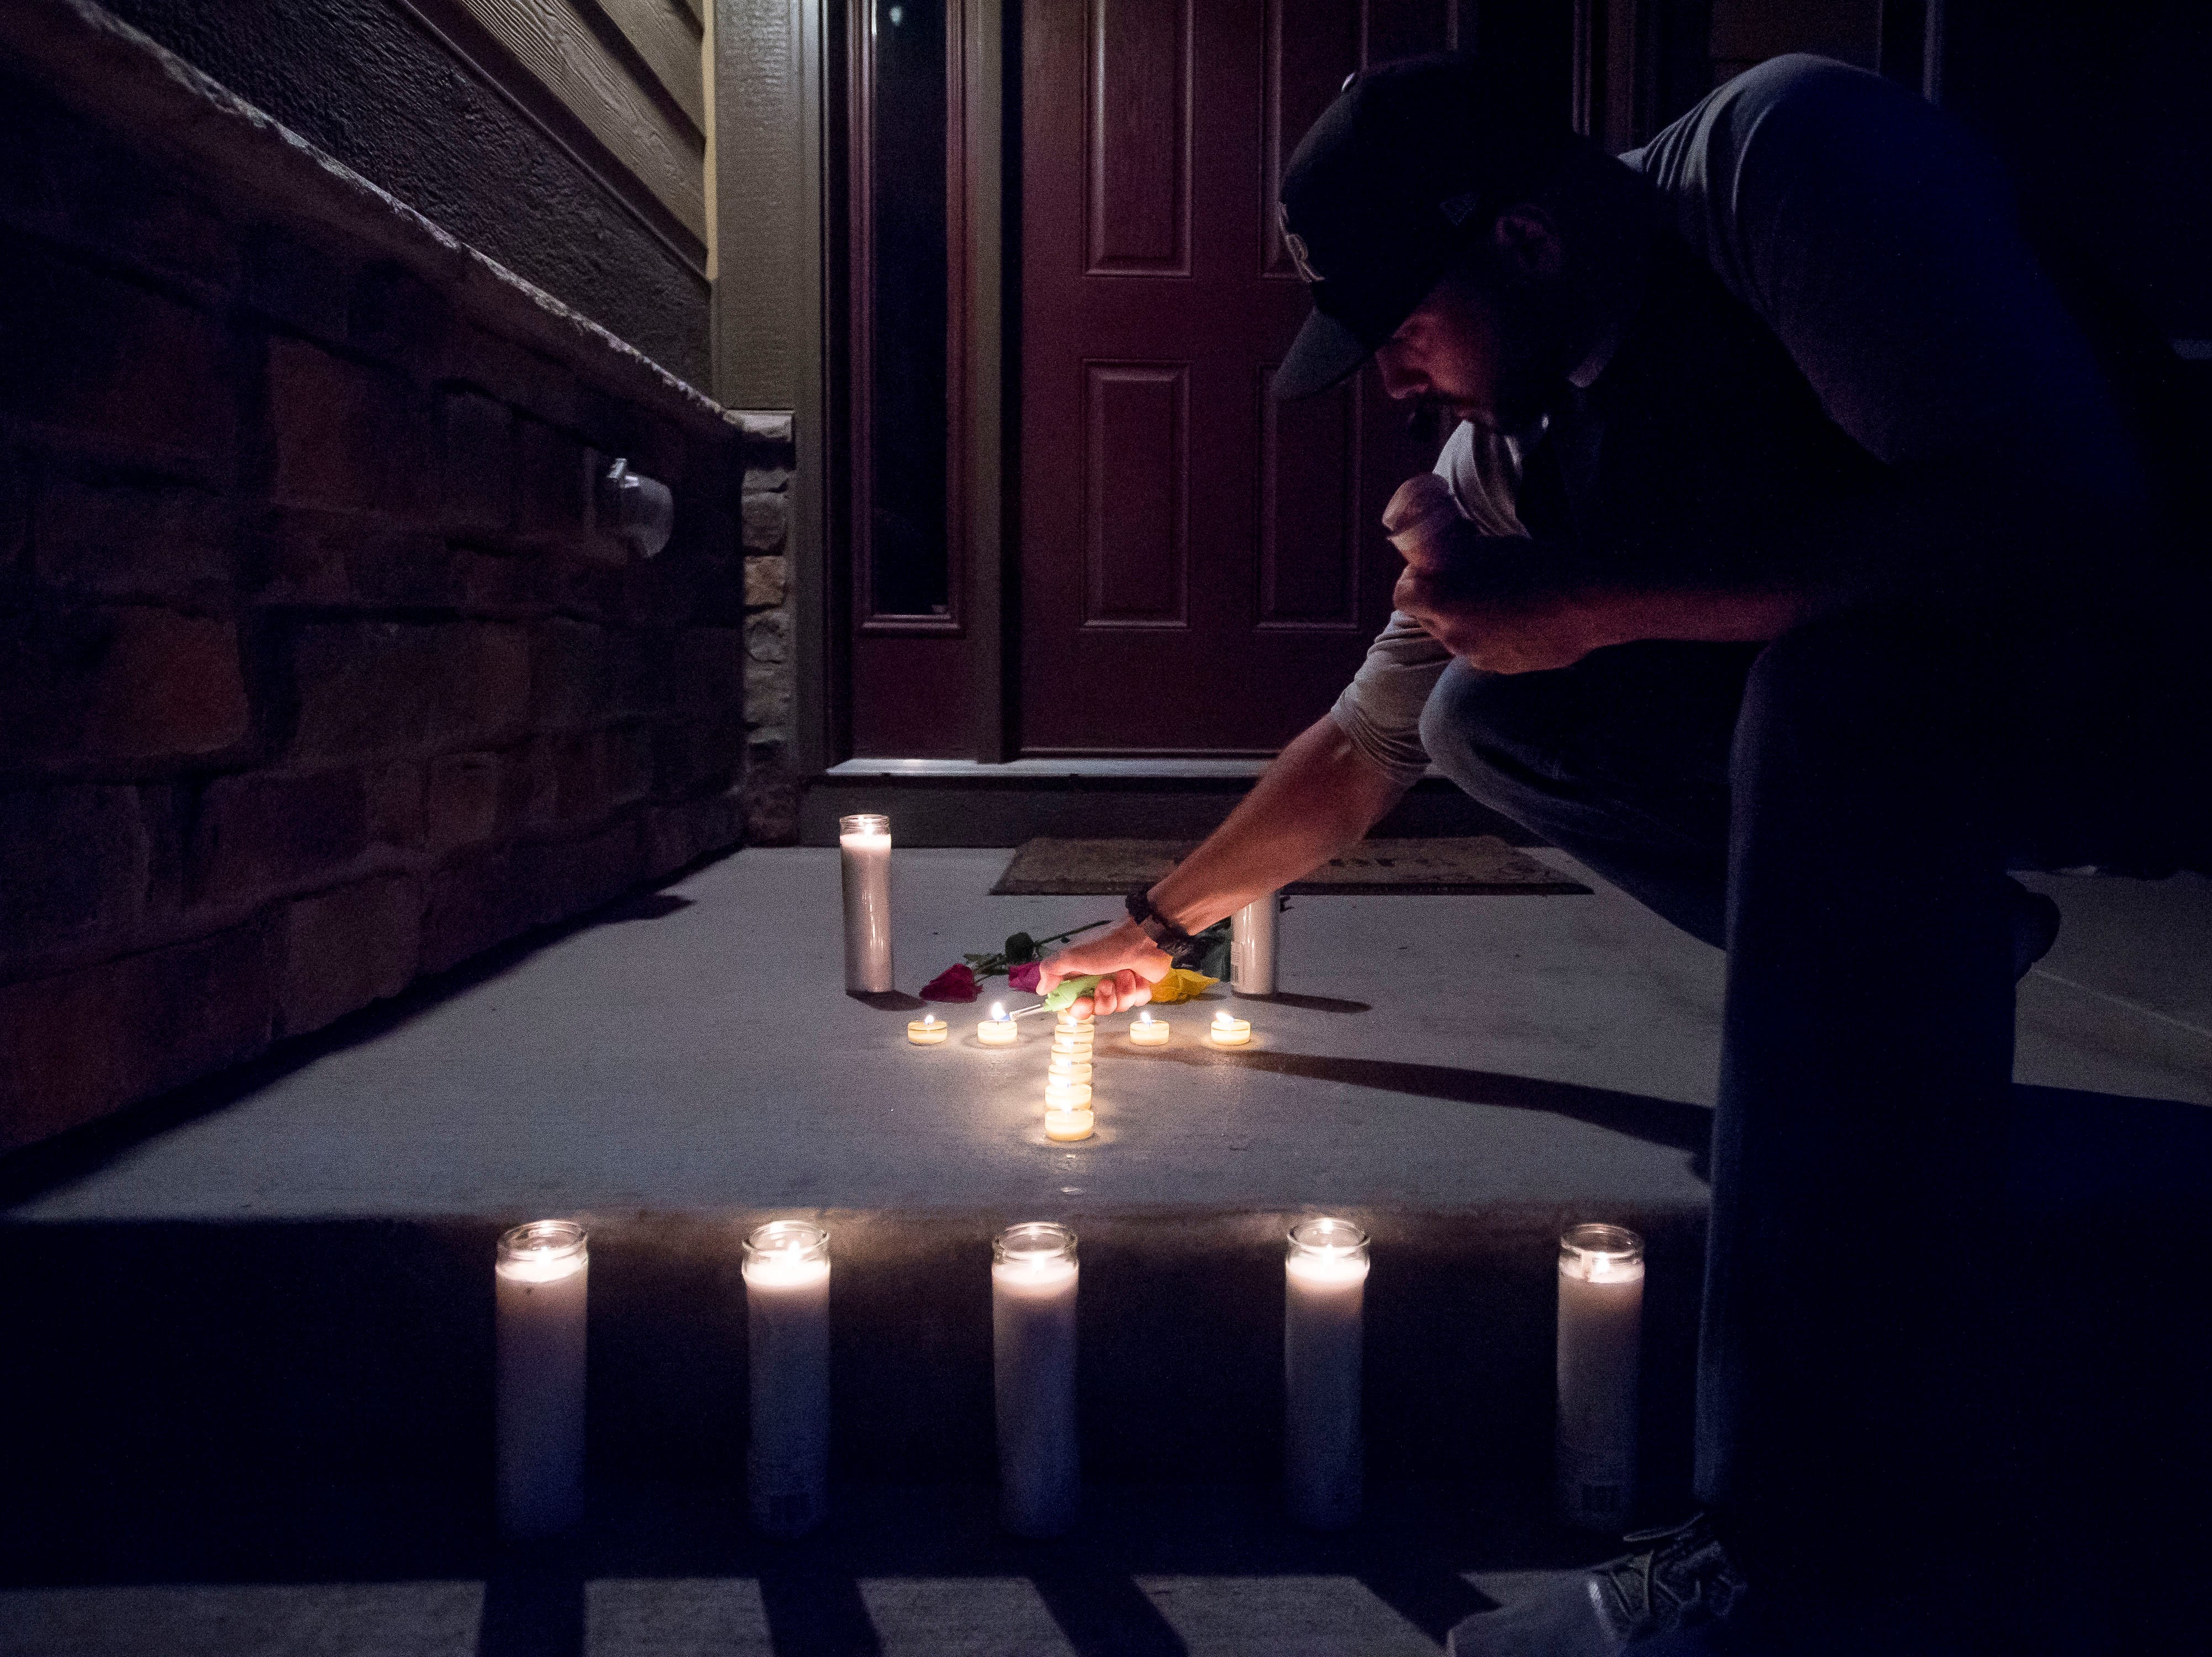 Tyler Sister, from Longmont, helps relight a candle in a memorial placed on the front porch while others gather for a candle-lit vigil for the slain Shanann Watts and her two daughters, Bella, 4, and Celeste, 3, in front of the Watts' family home on Friday, Aug. 17, 2018, in Frederick, Colo.